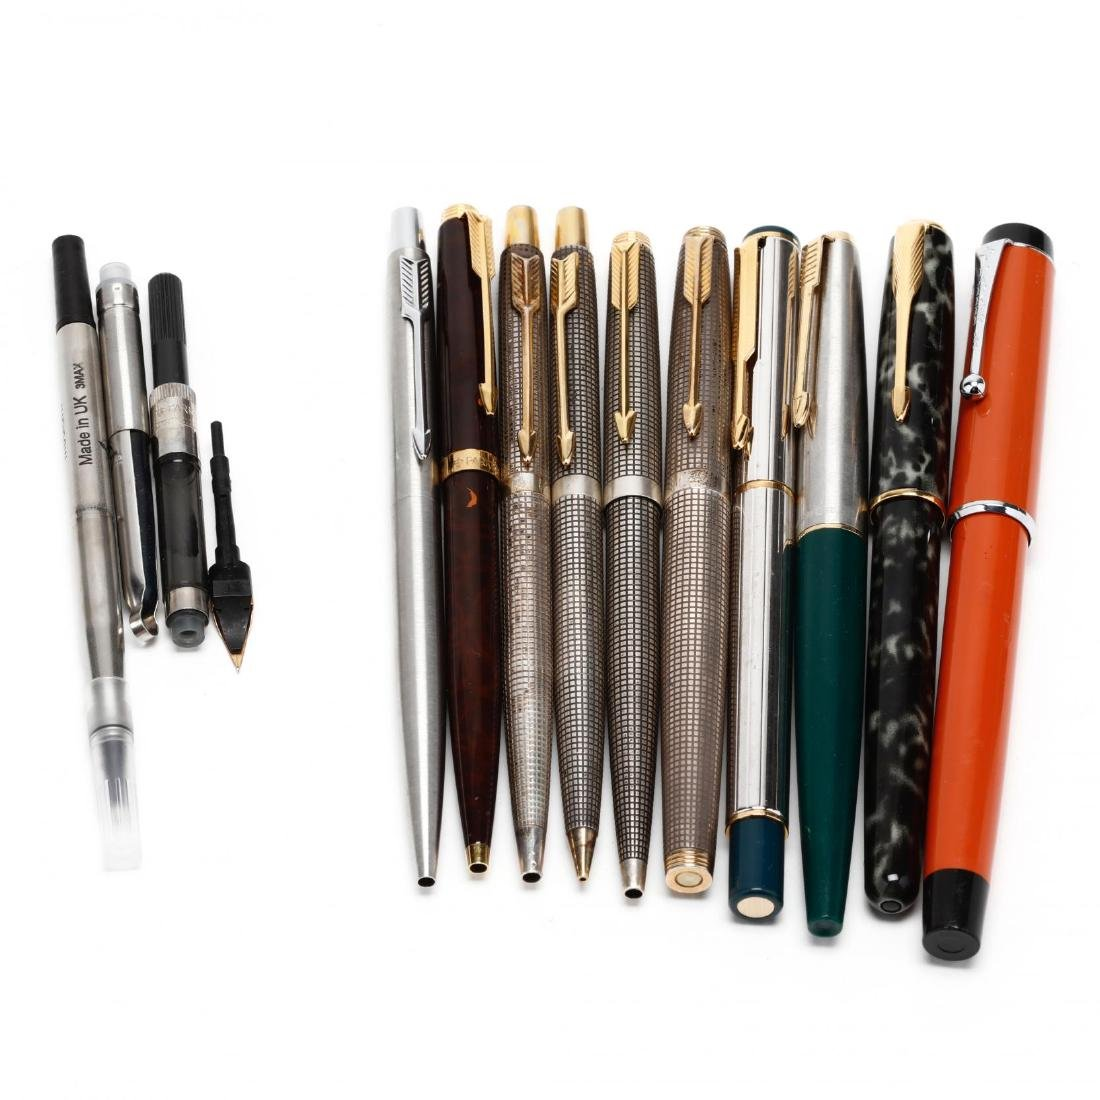 Ten Parker Writing Implements With Accessories